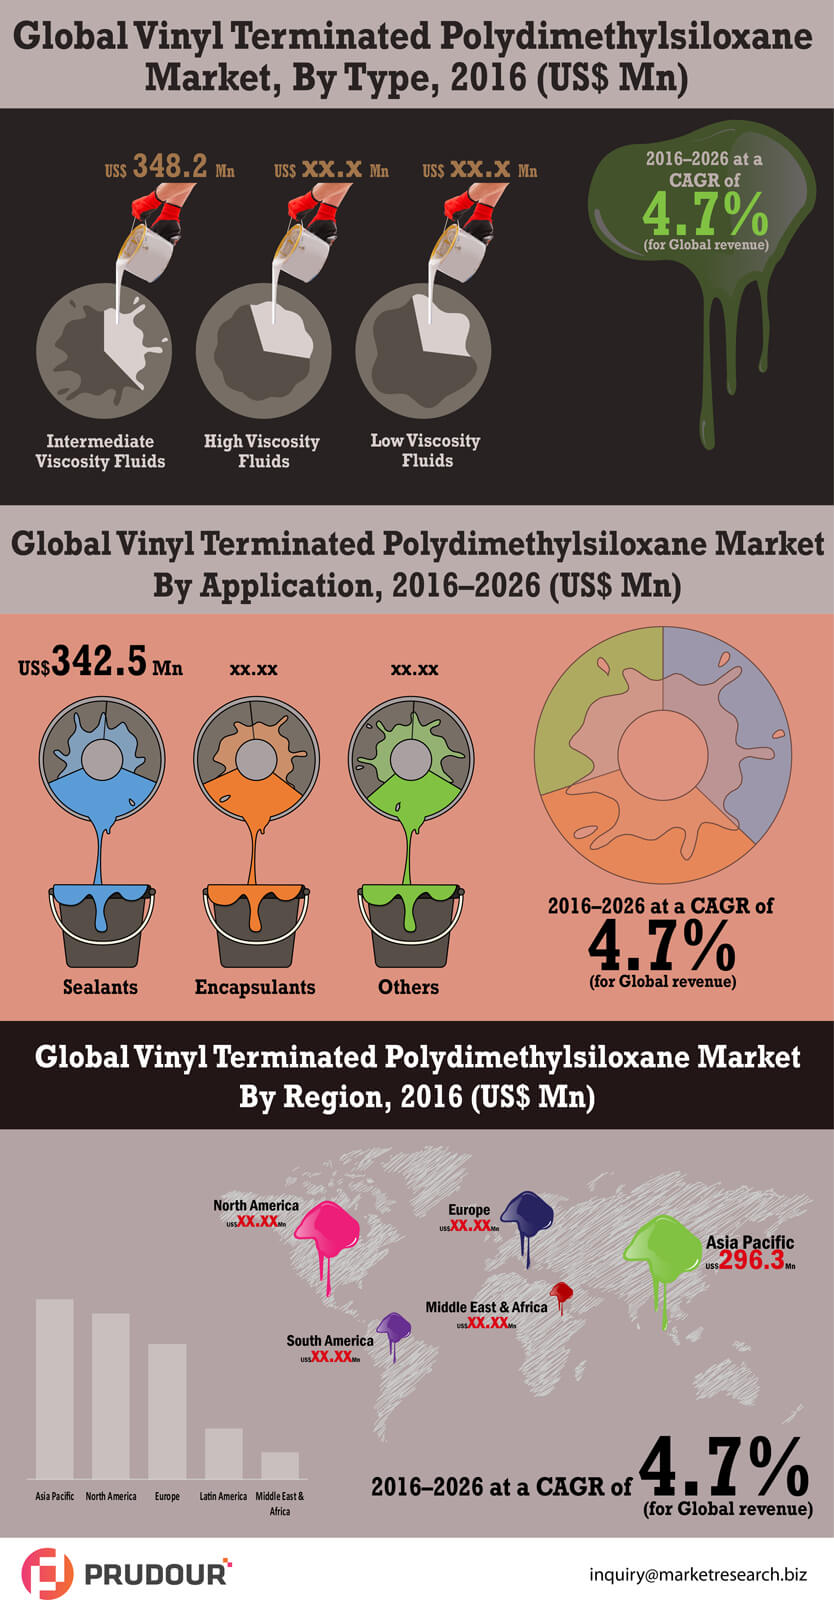 vinyl-terminated-polydimethylsiloxane-market-infographic